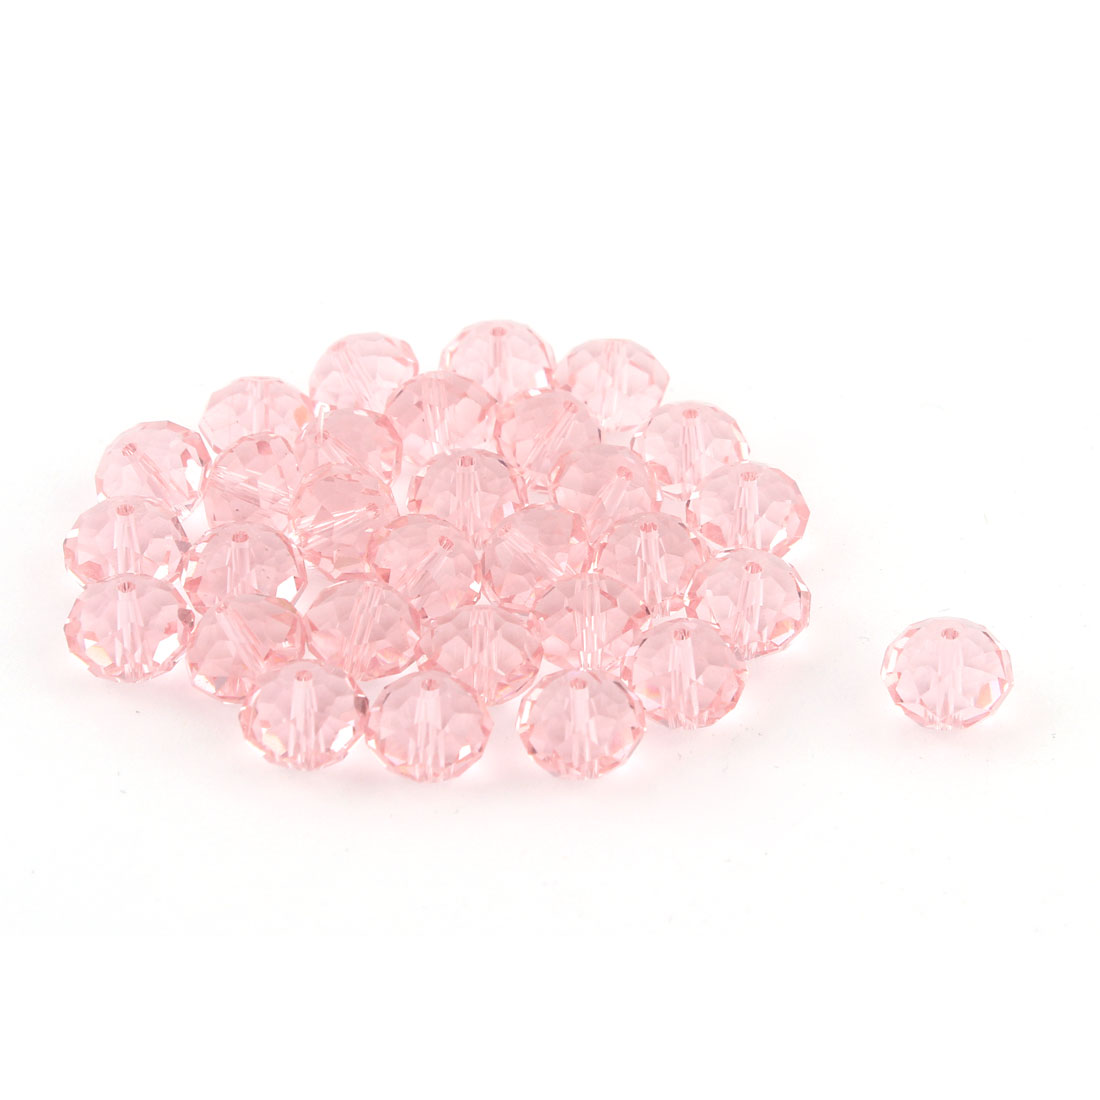 Women Jewelry Bracelet Necklace Artifical Glittery Crystal Beads Dark Pink 10MM 30 PCS